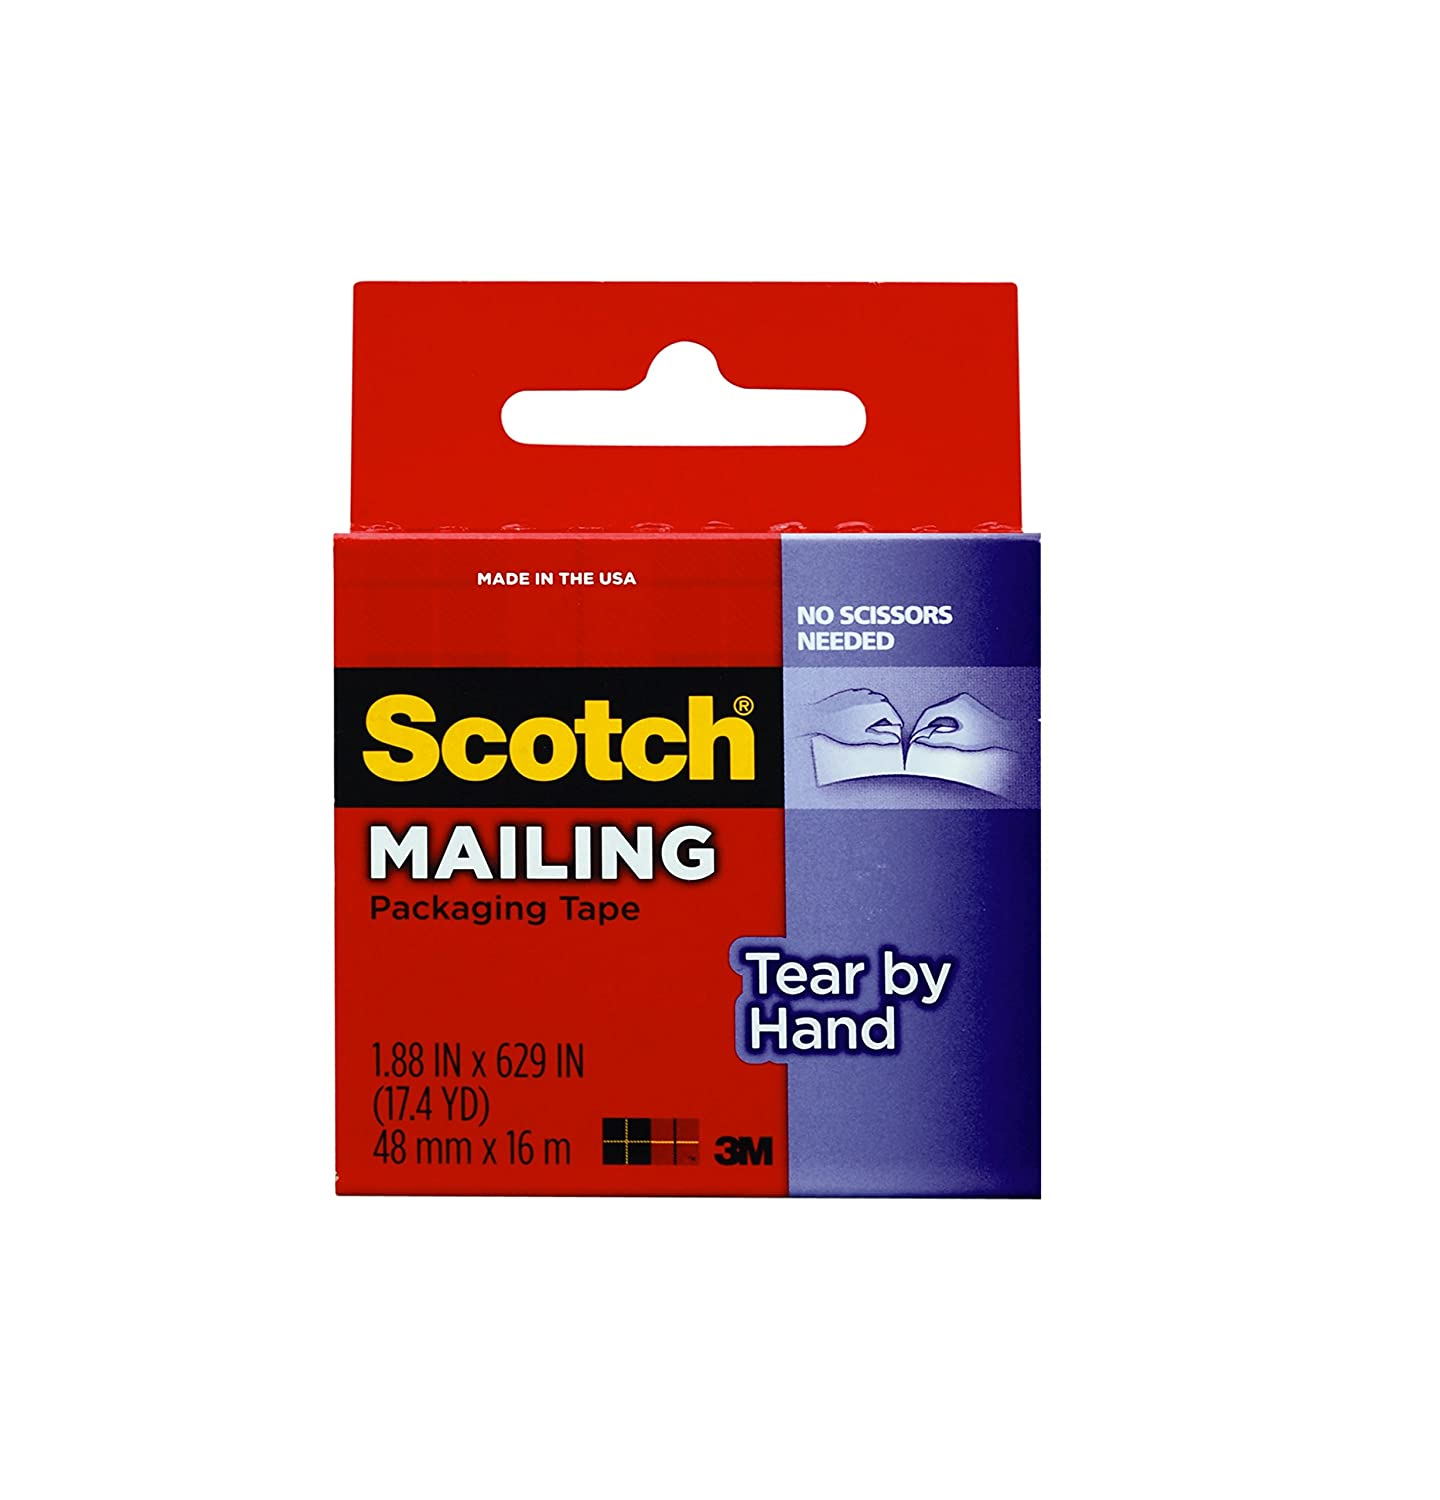 Scotch Tear-by-Hand Packaging Tape, 48mm x 16m 3m - Office Product 3841CDN Office Supplies